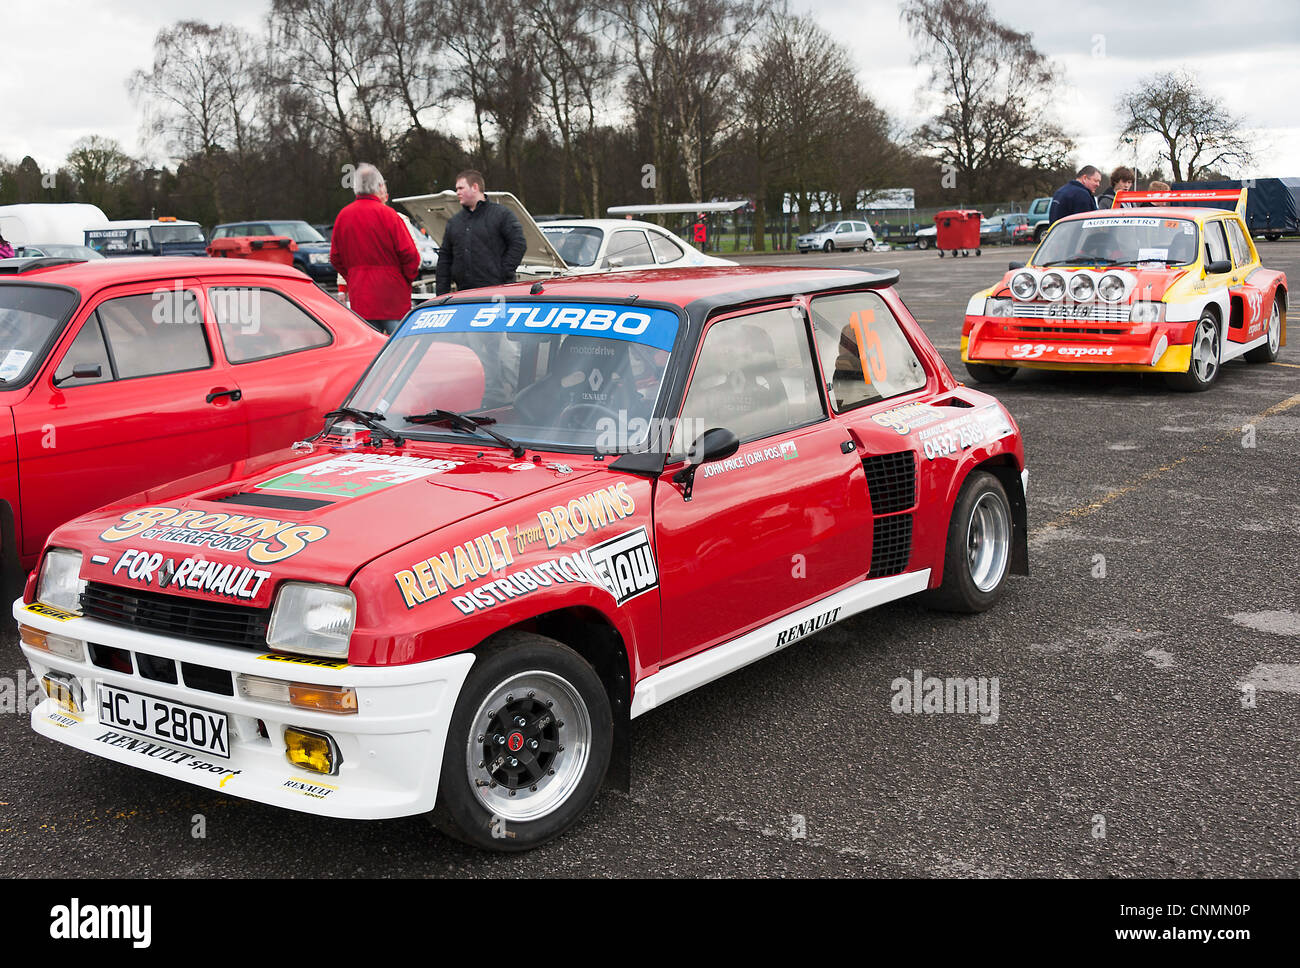 Renault 5 Turbo and Mini Metro 6R4 Rally Cars in the Paddock at ...